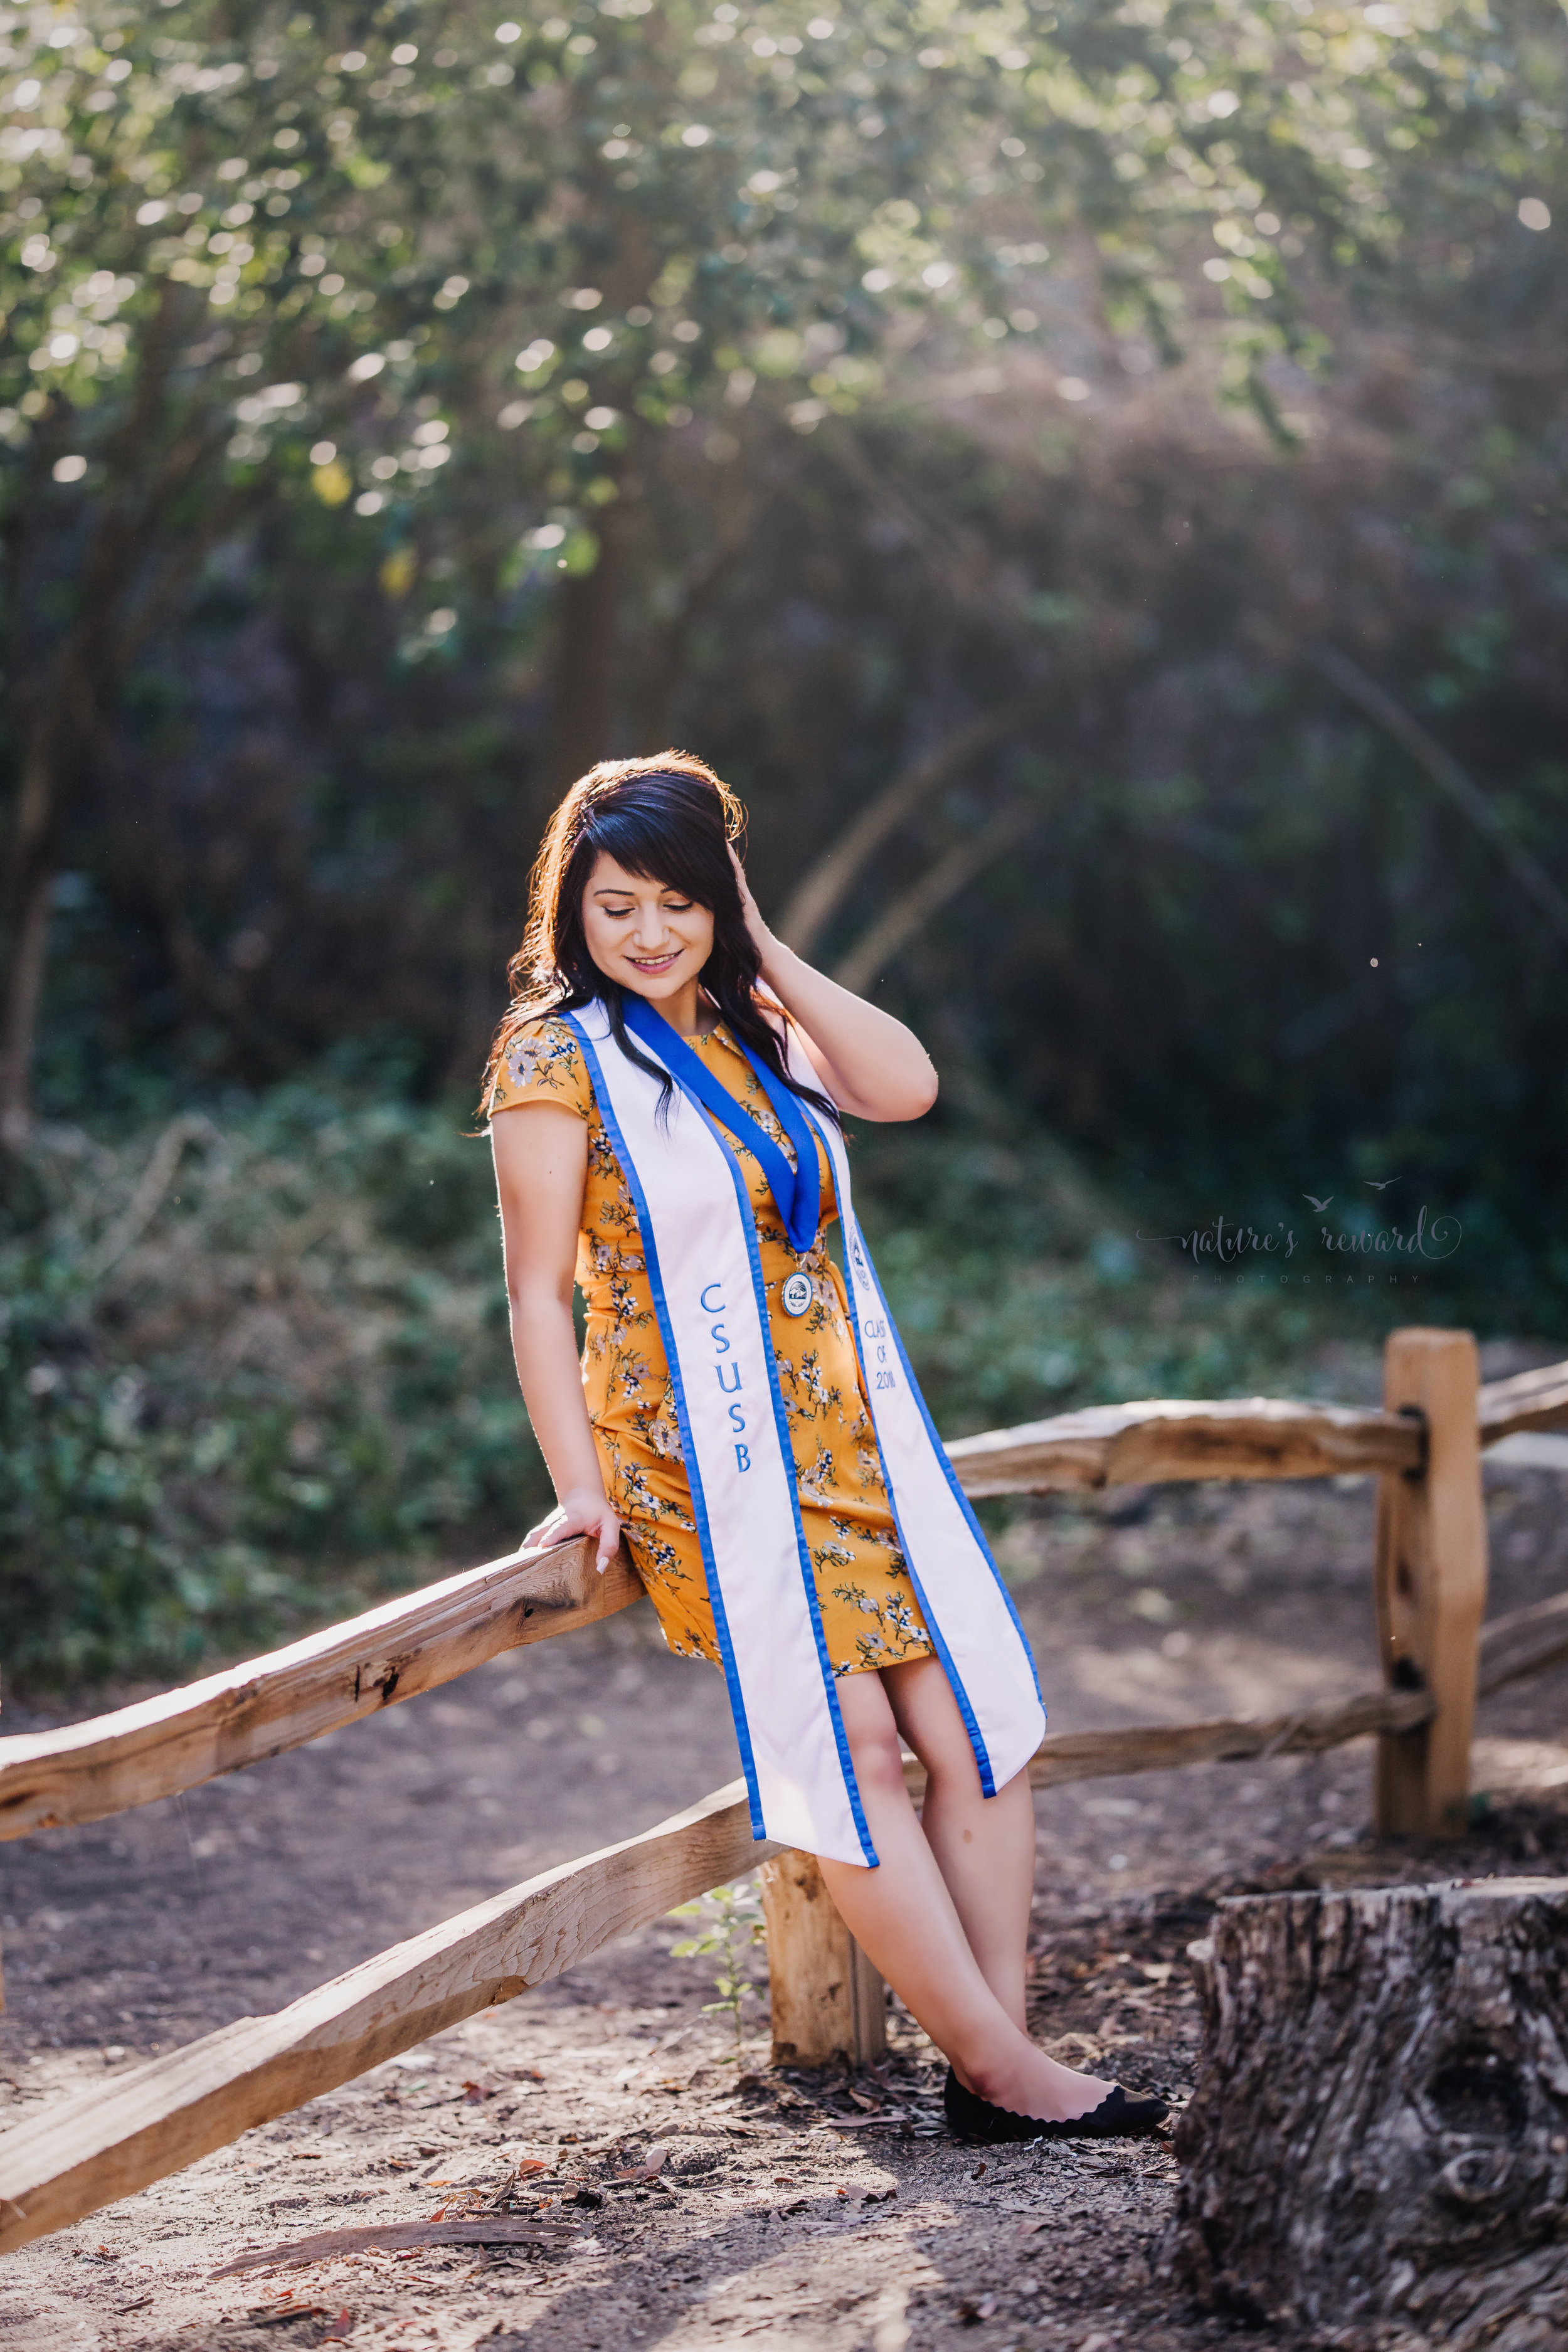 Class of 2018, California State University, San Bernardino Graduate wearing a yellow dress and Medallion, bathed in light,surrounded by the lush green of a park in Redlands, California in this Senior Portrait by Nature's Reward Photography.